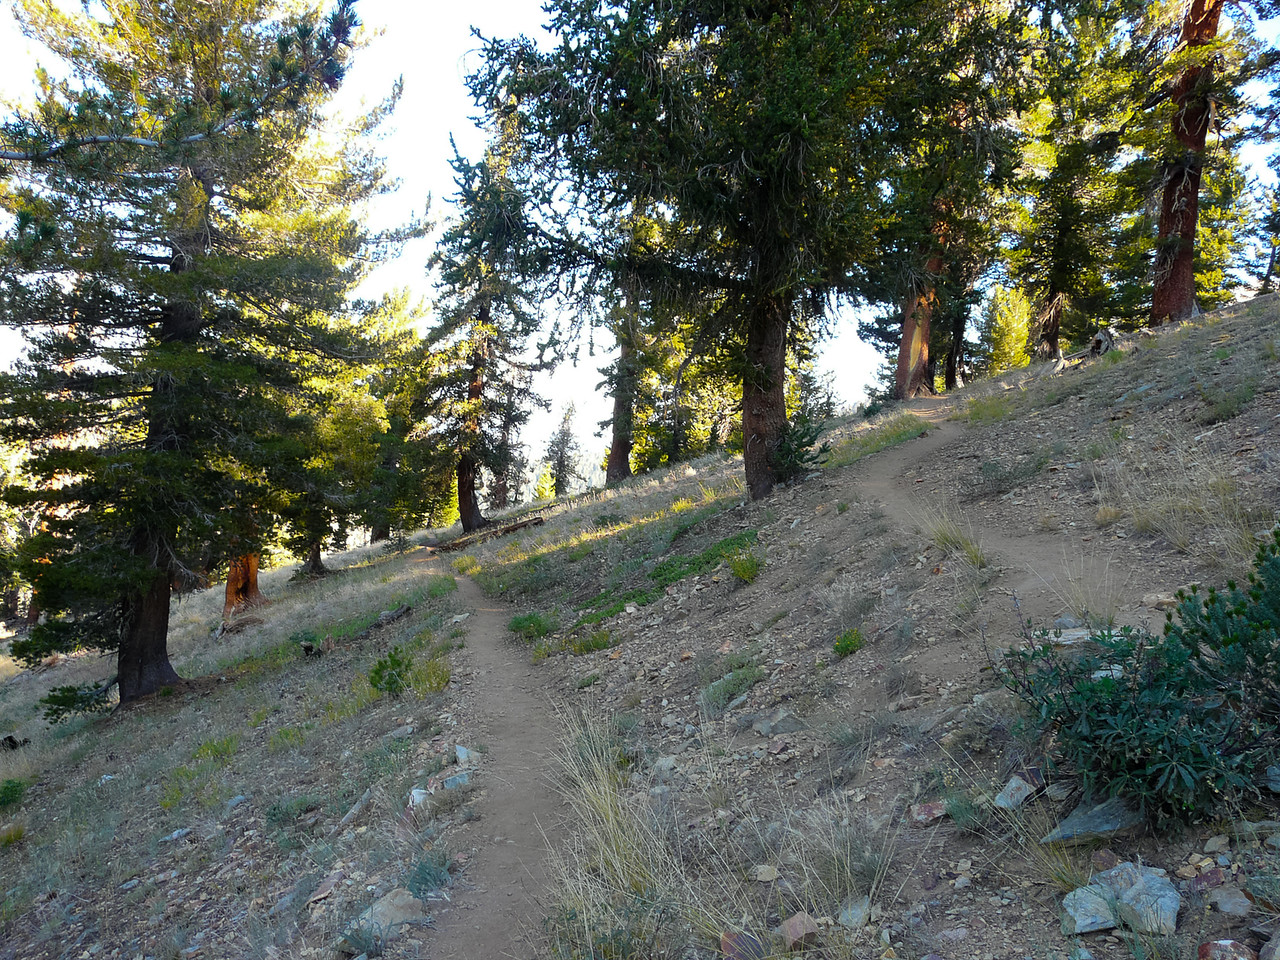 But after about 3/4 mile, it was all open hillside.